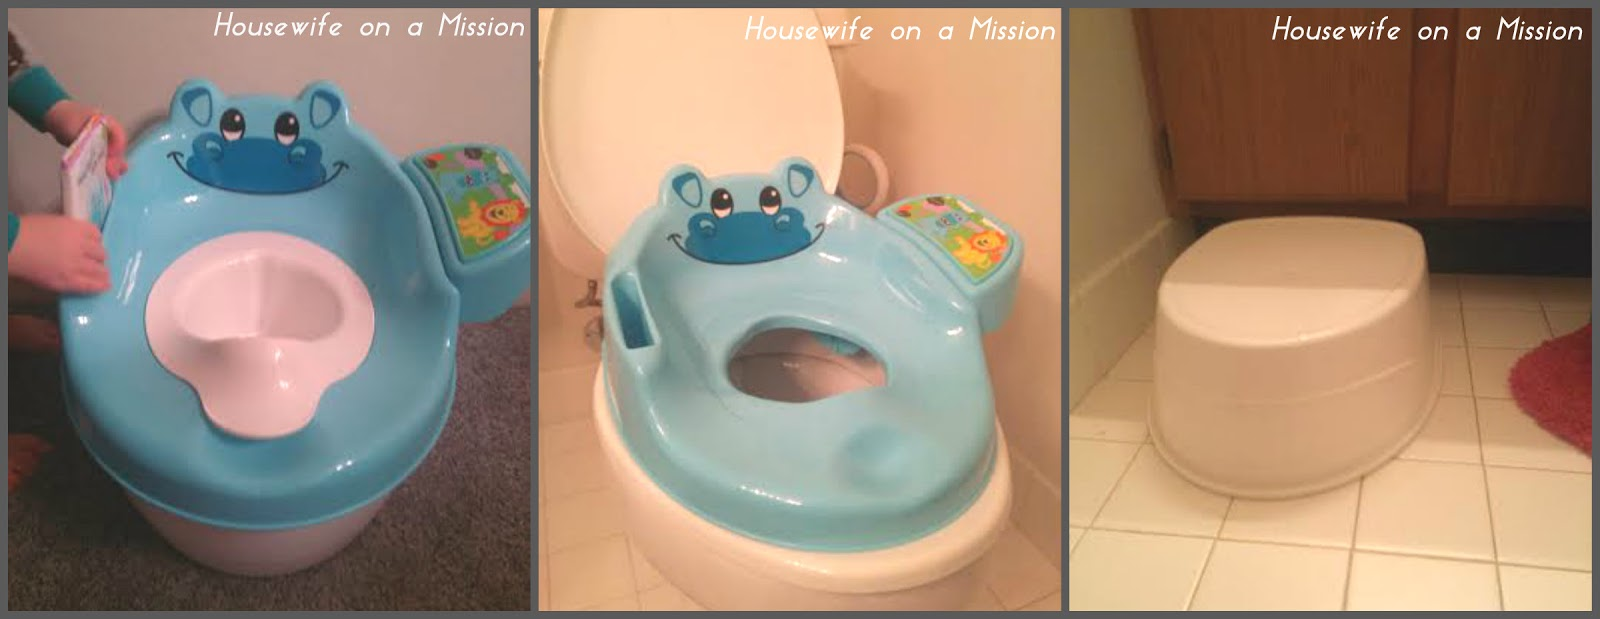 summer potty chair bungie office the story of three infant 3 in 1 hippo tales giveaway once i did laid out all pieces and quickly put together it was very simple took me 2 minutes